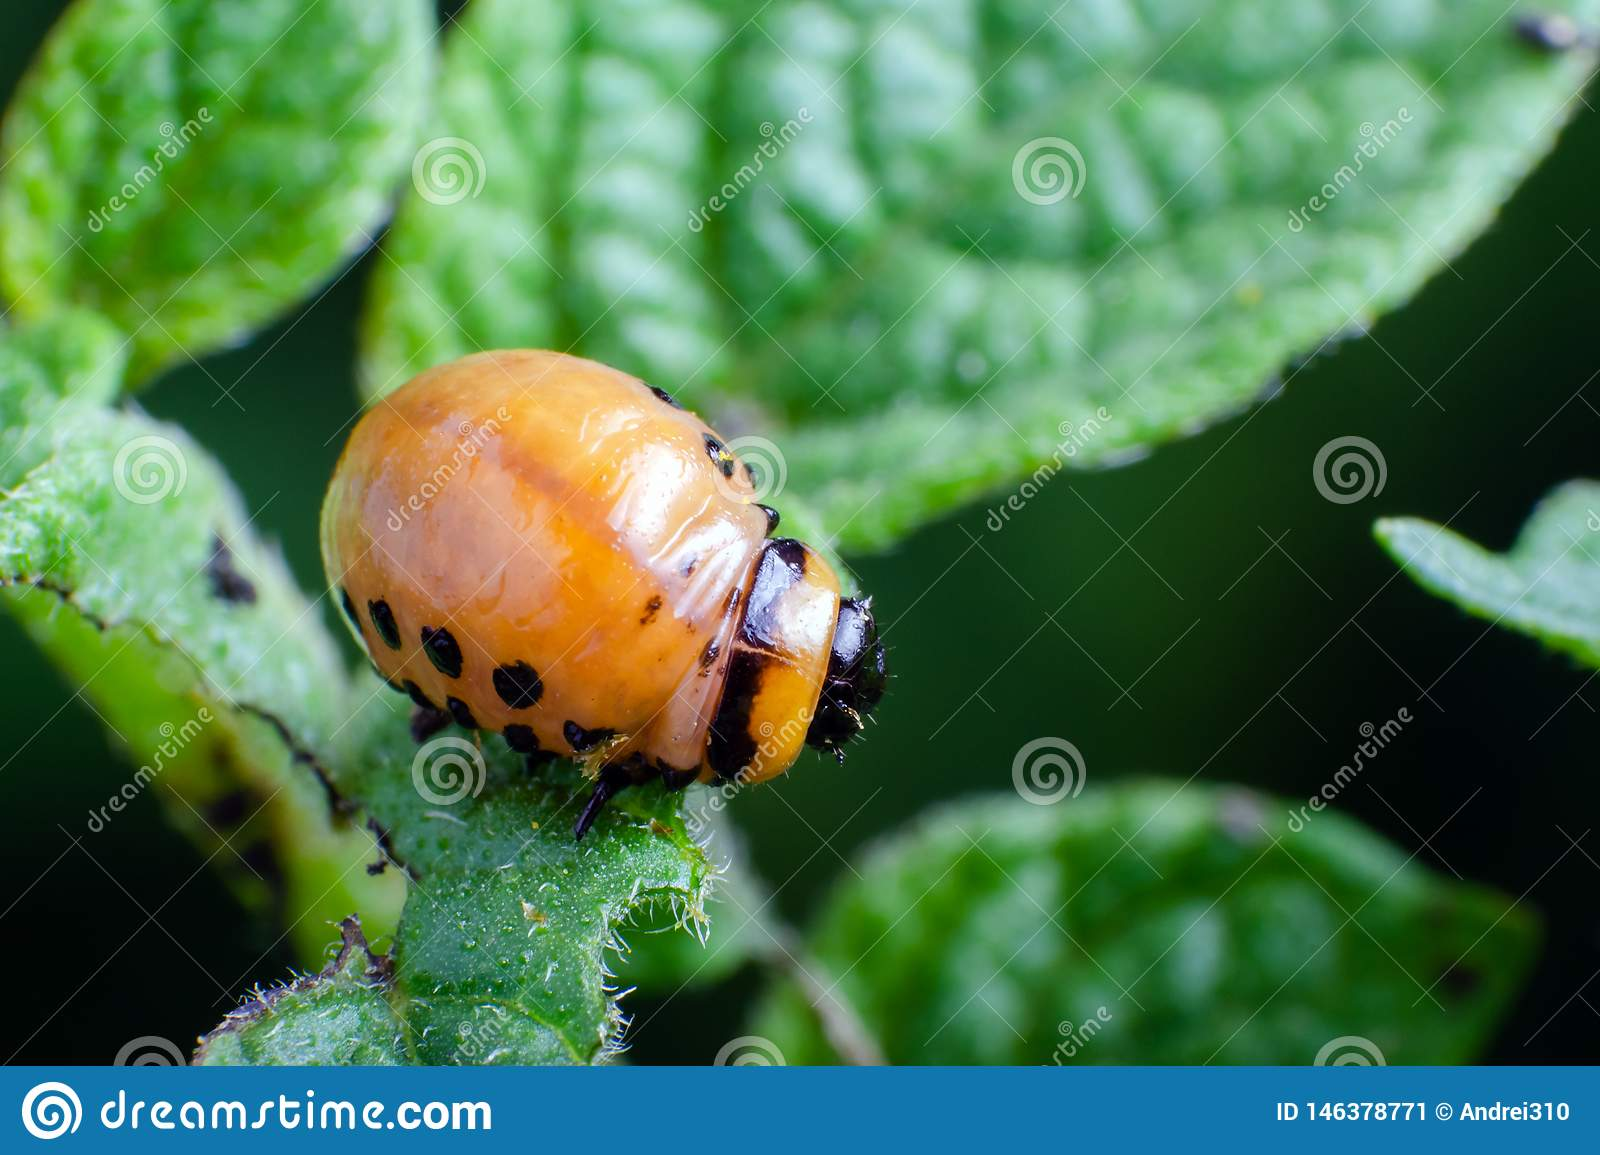 Red larva of the Colorado potato beetle eats potato leaves